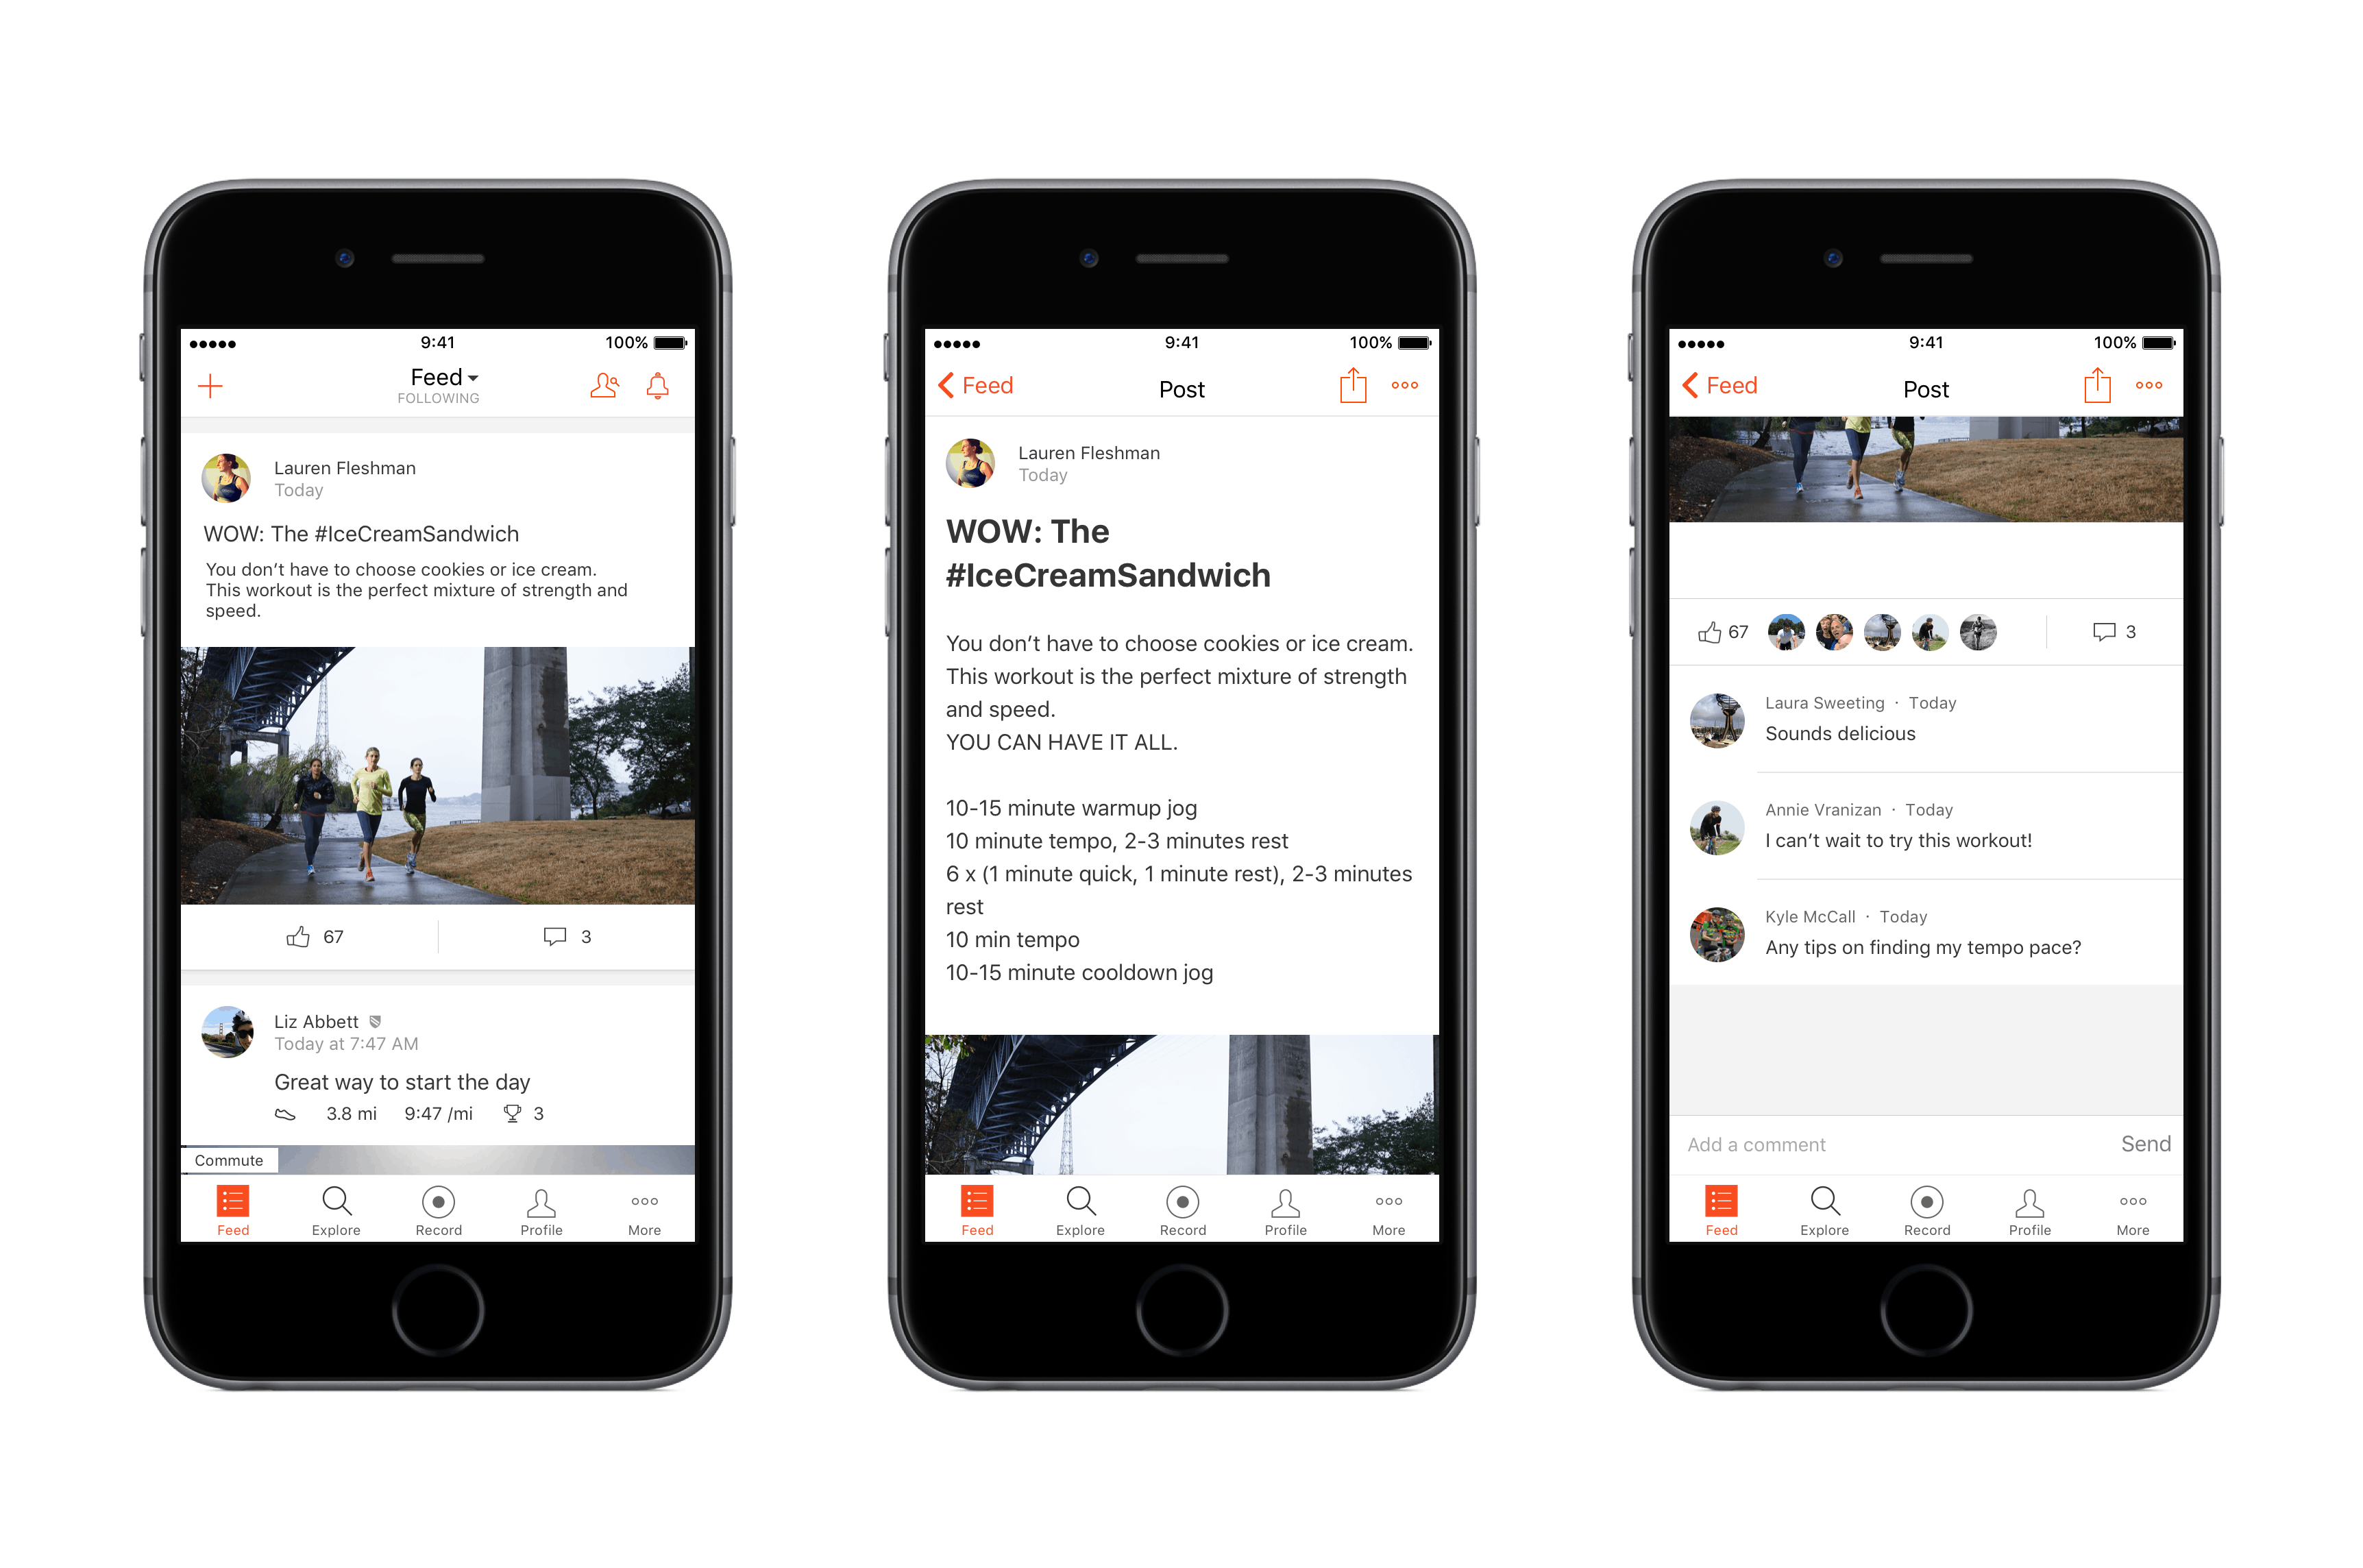 Strava Athlete Posts